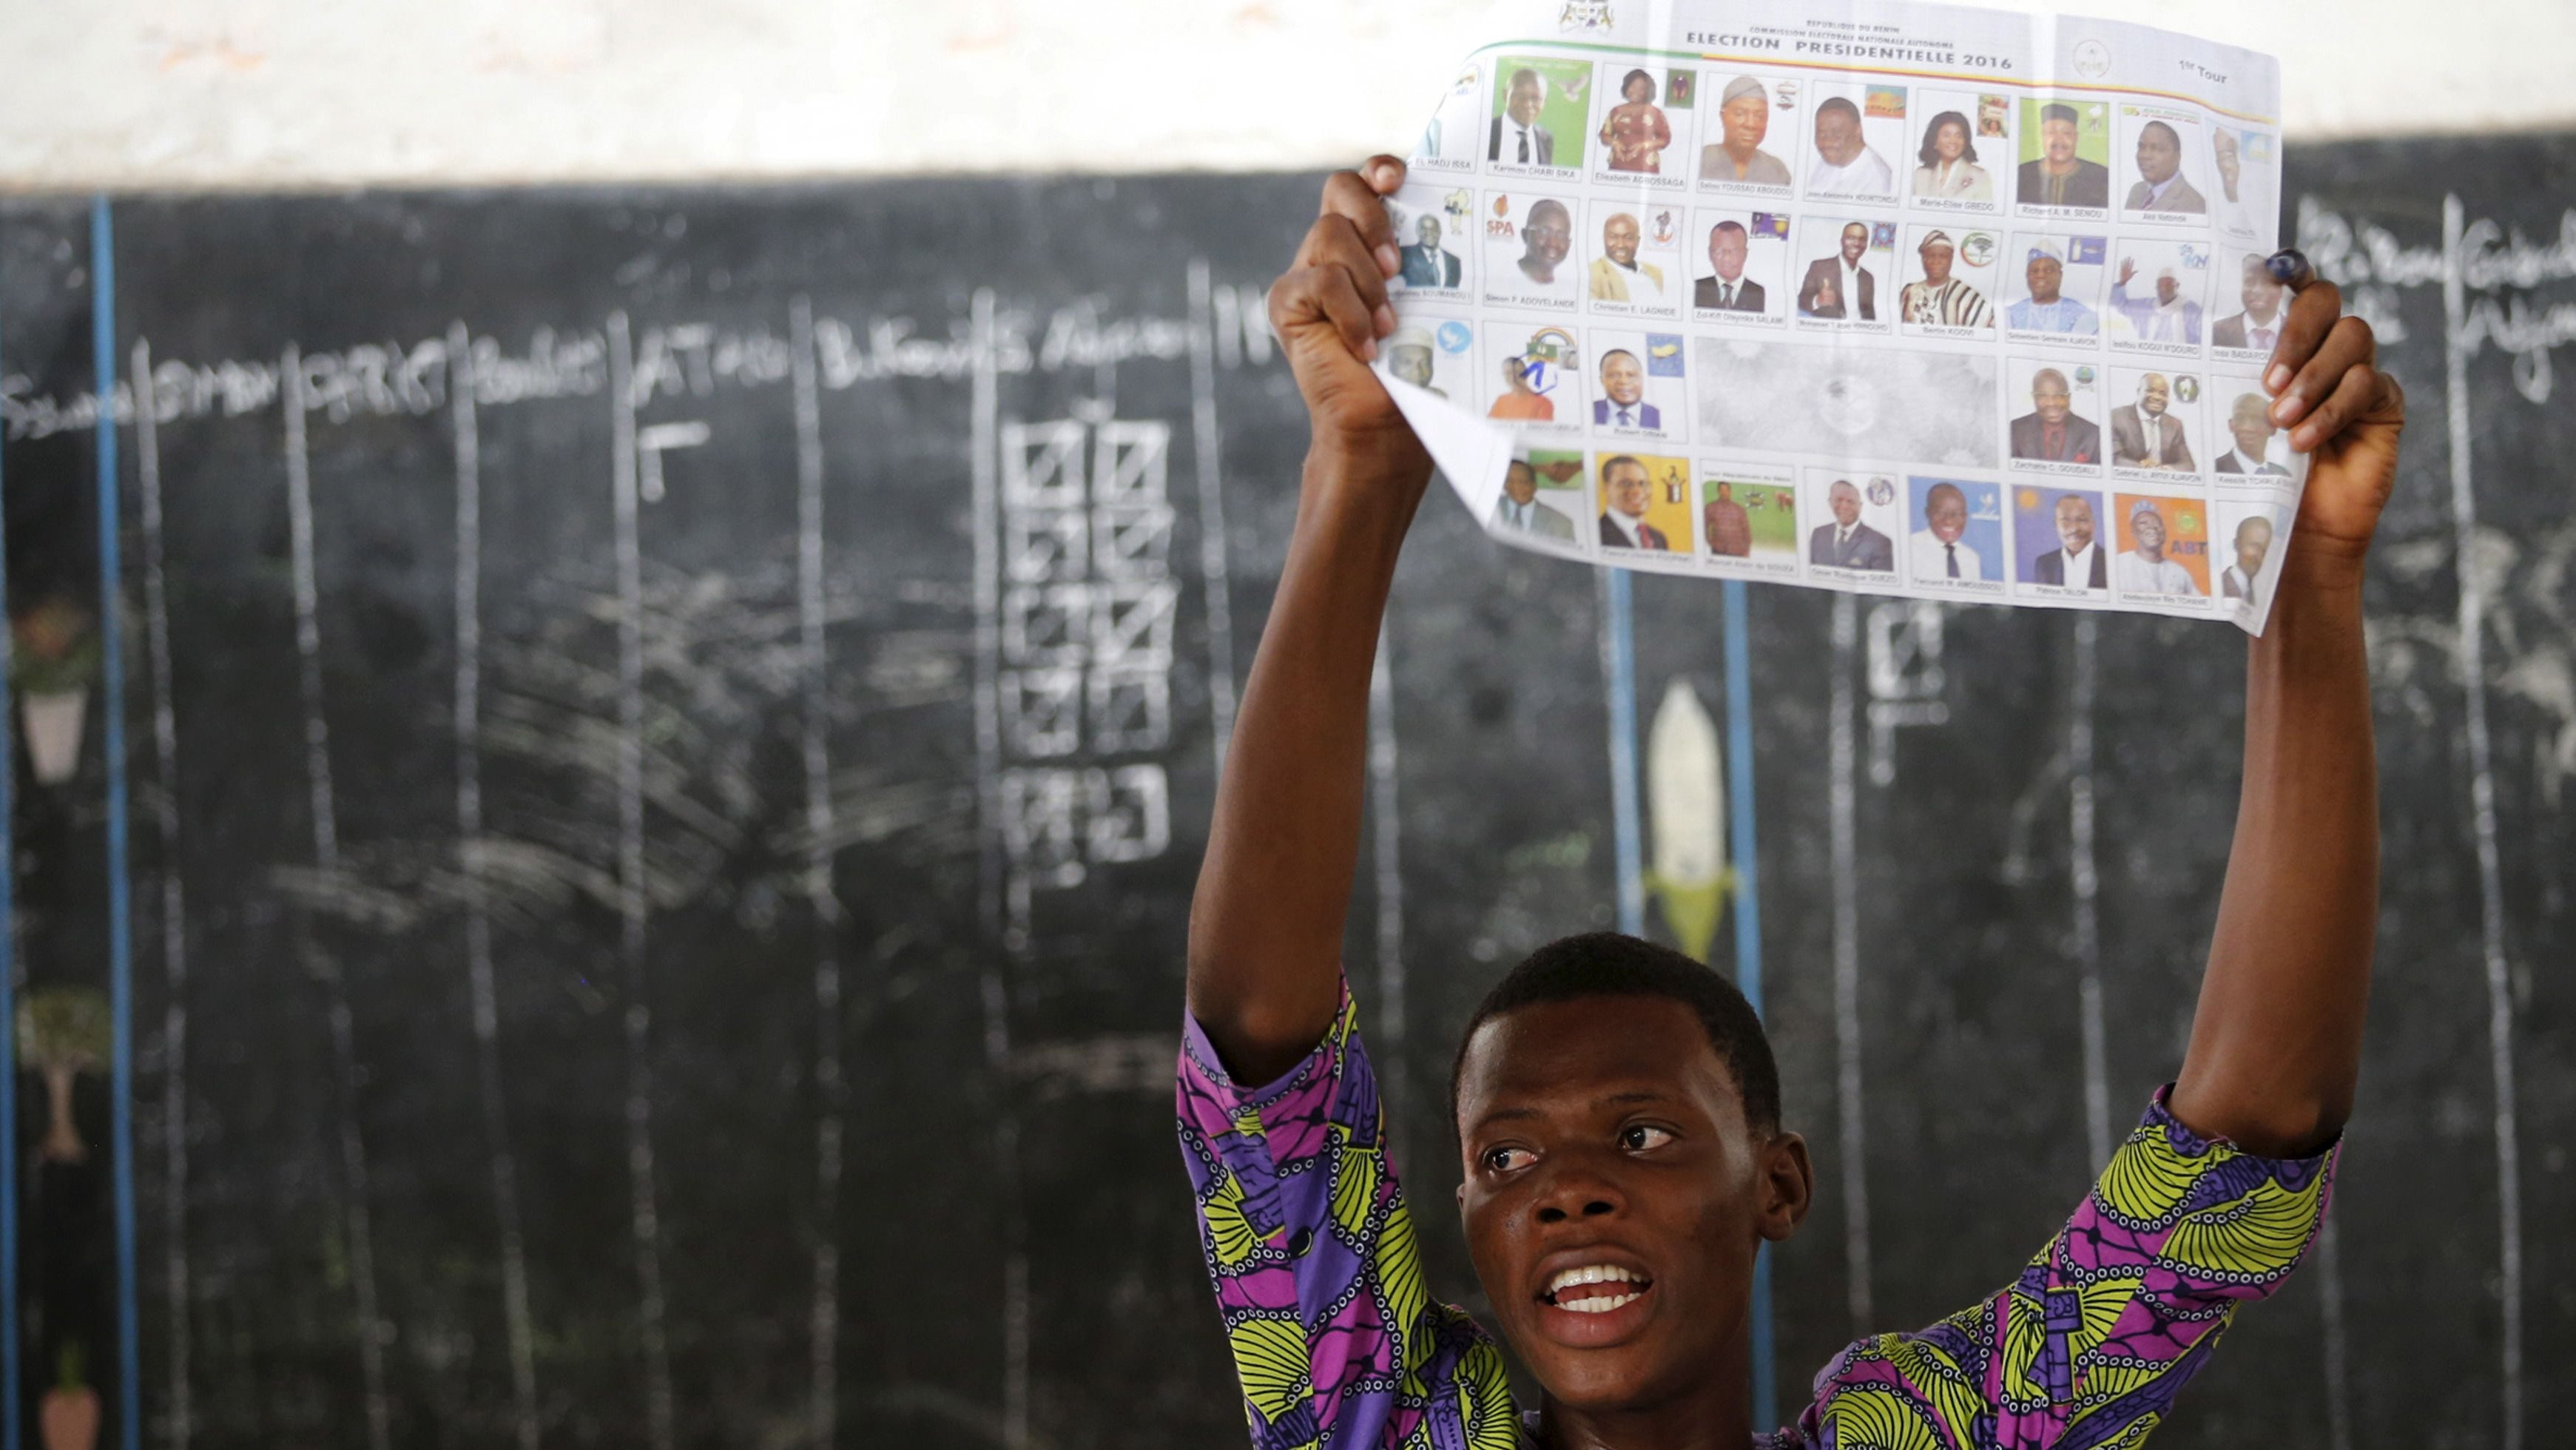 An electoral officer holds up a ballot paper during the count of votes after polling stations closed for the presidential election in Cotonou, Benin March 6, 2016.